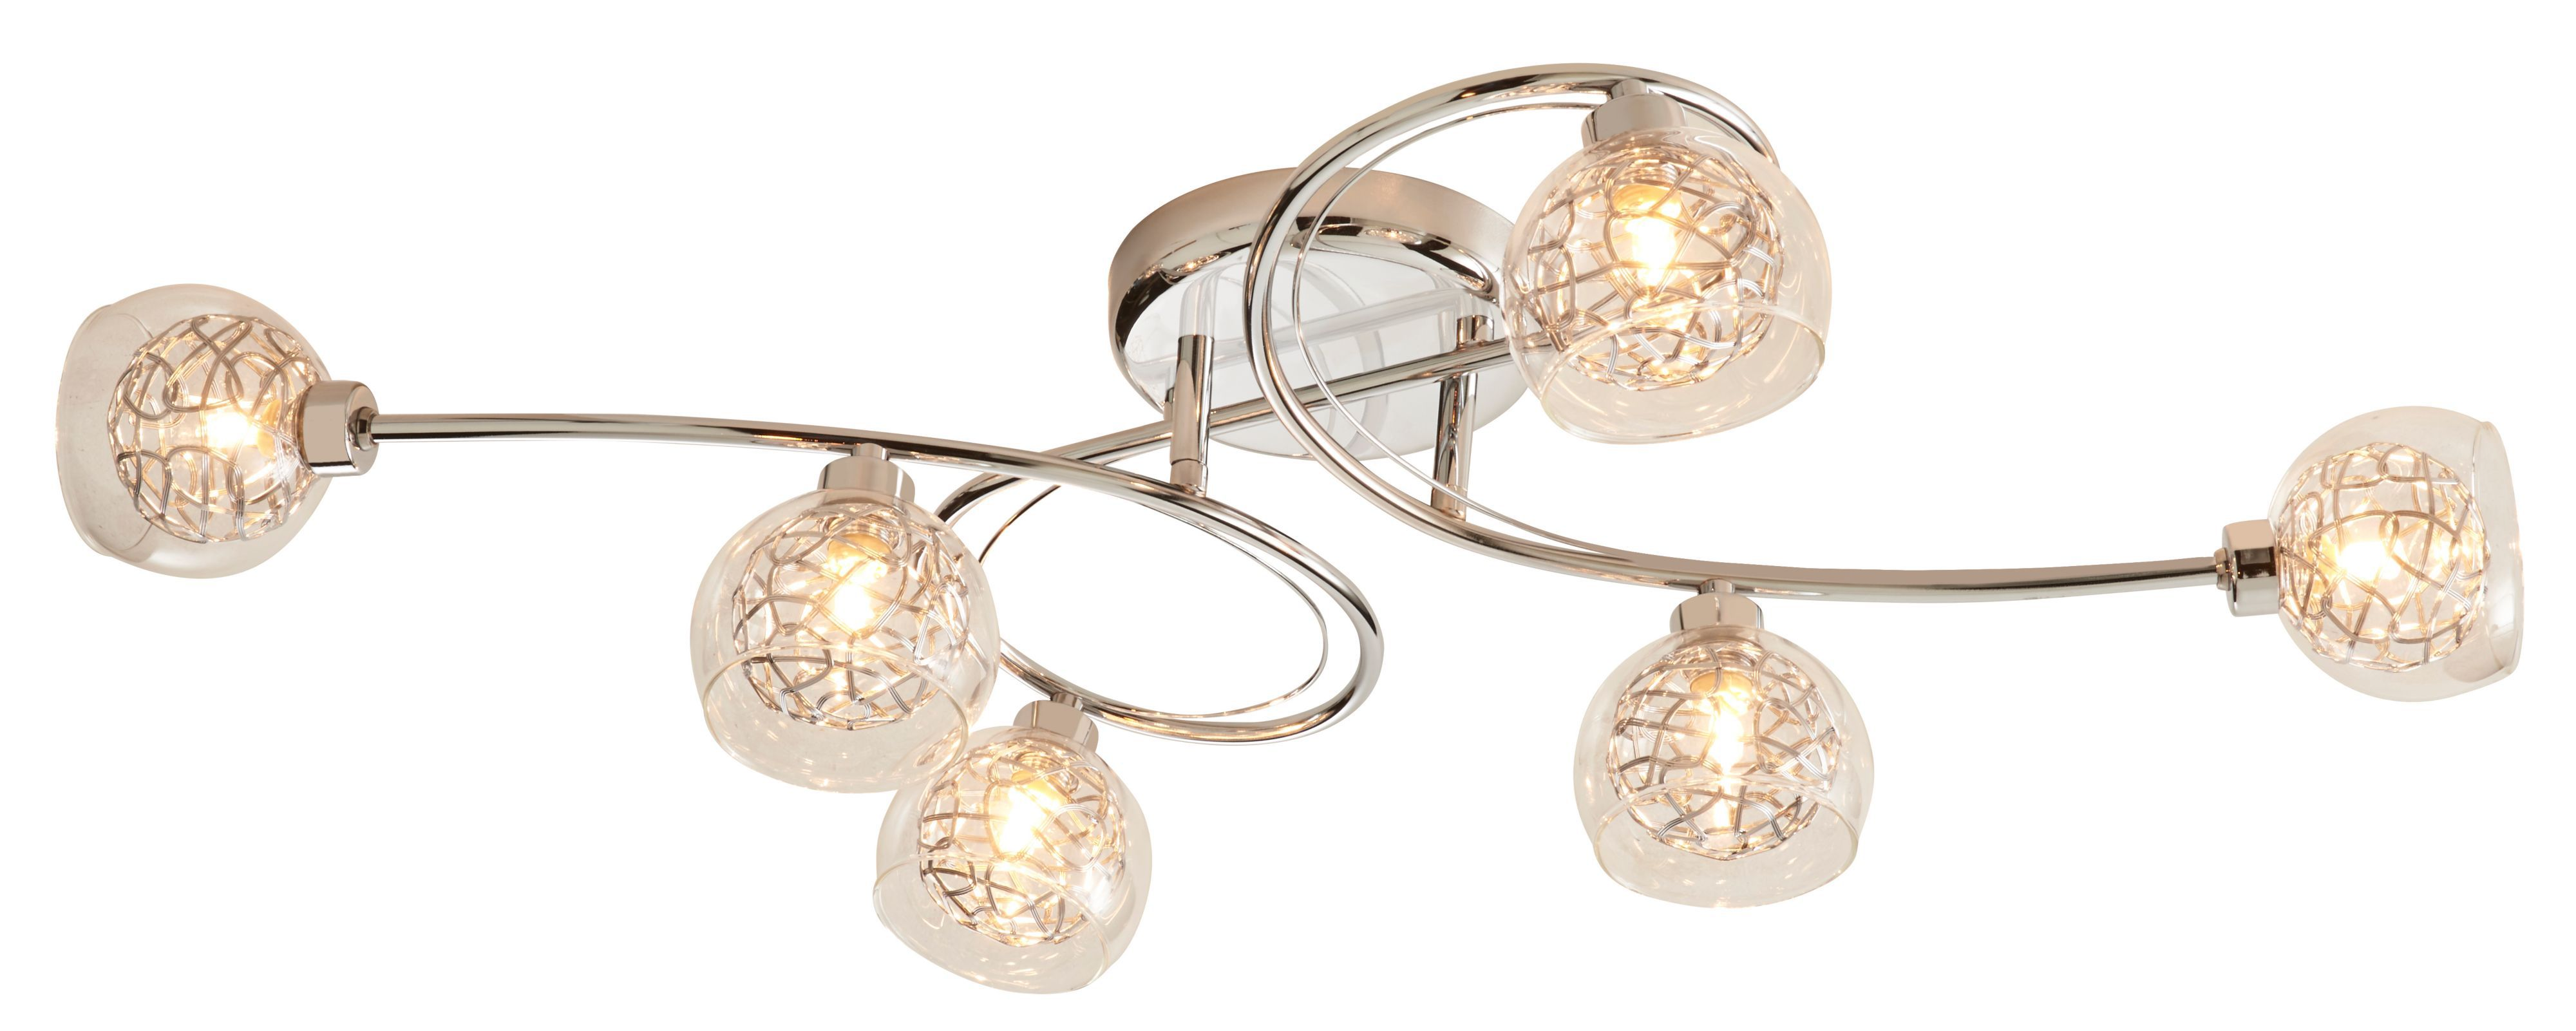 Carmenta Chrome Effect 6 Lamp Ceiling Light Departments